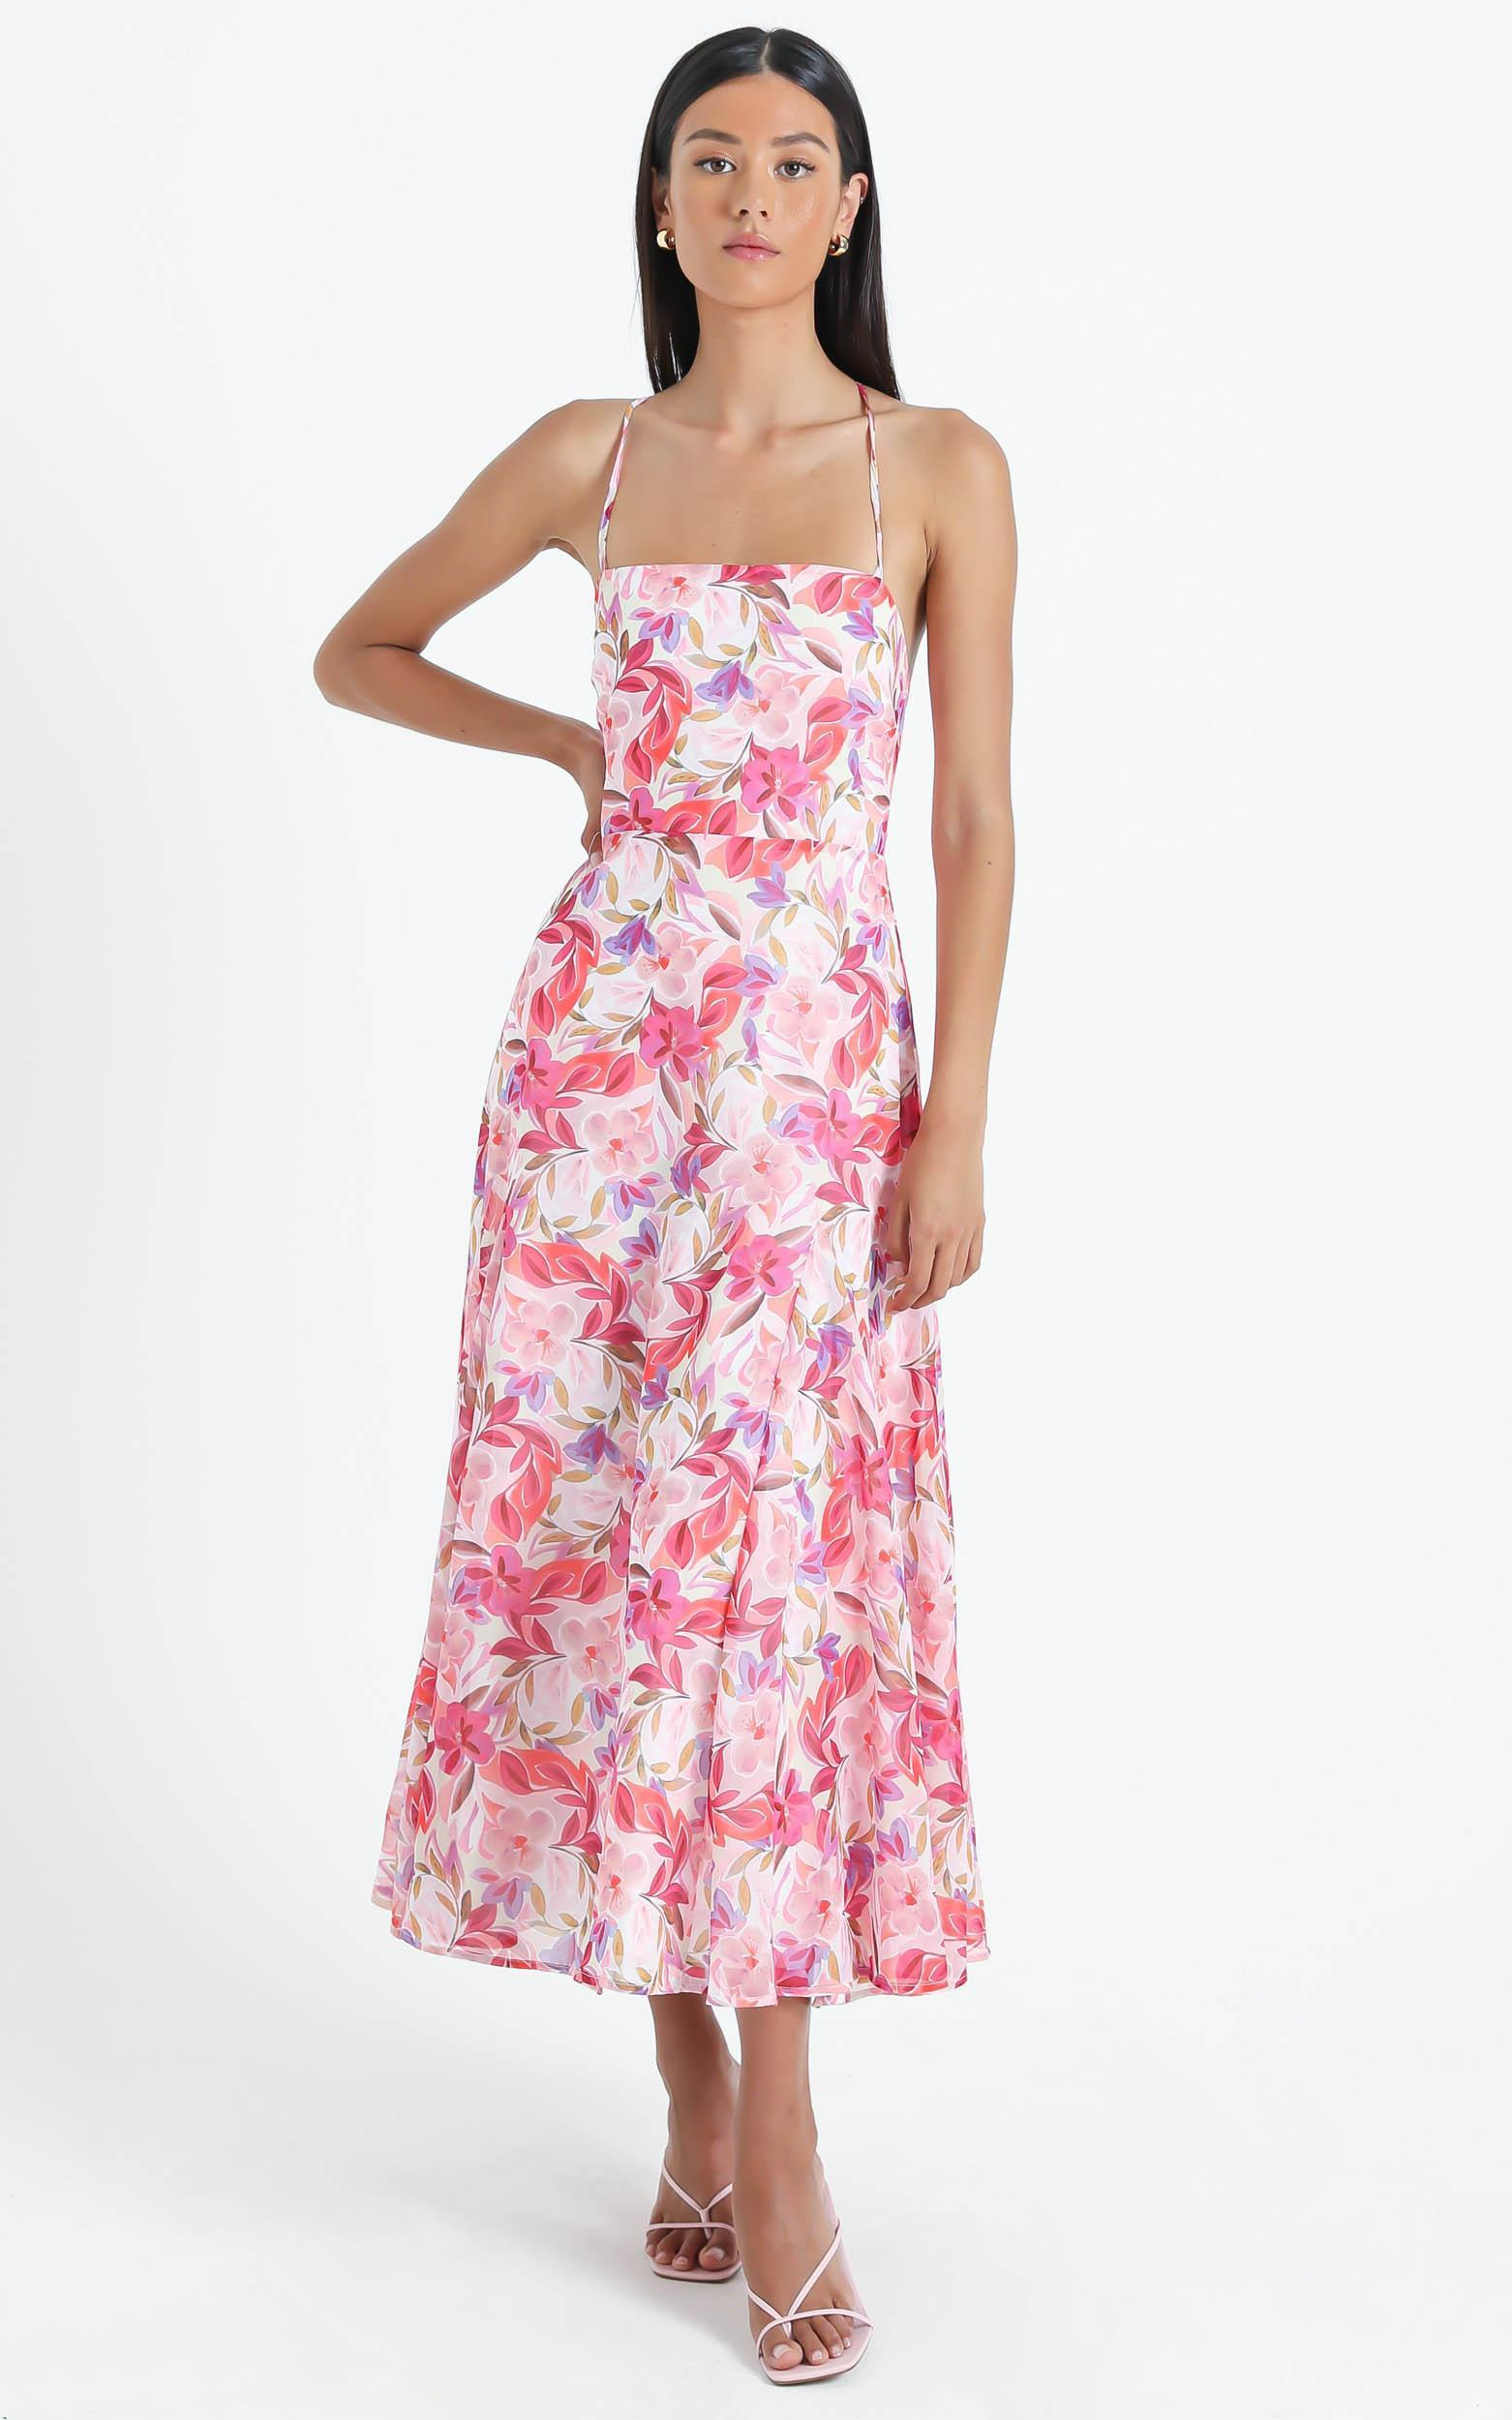 Melvin Dress in Eventful Bloom - 6 (XS), Multi, hi-res image number null